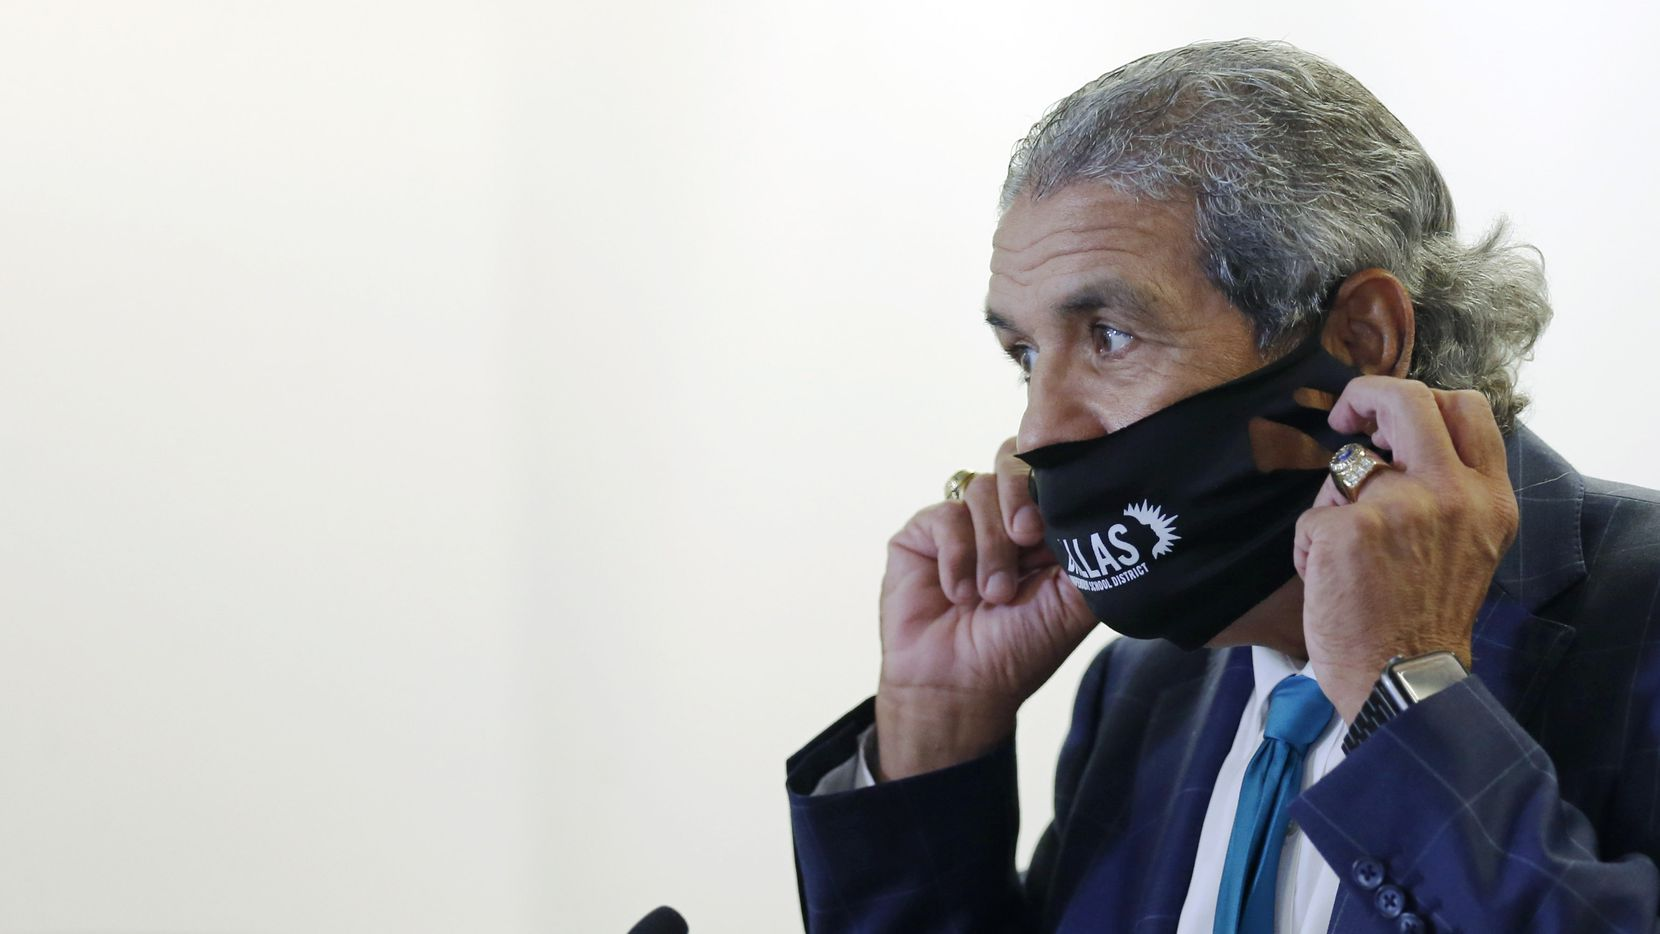 DISD superintendent Michael Hinojosa takes his mask off before speaking to the media about starting the school year virtually during a press conference at Dallas ISD headquarters in Dallas on Thursday, August 20, 2020. (Vernon Bryant/The Dallas Morning News)